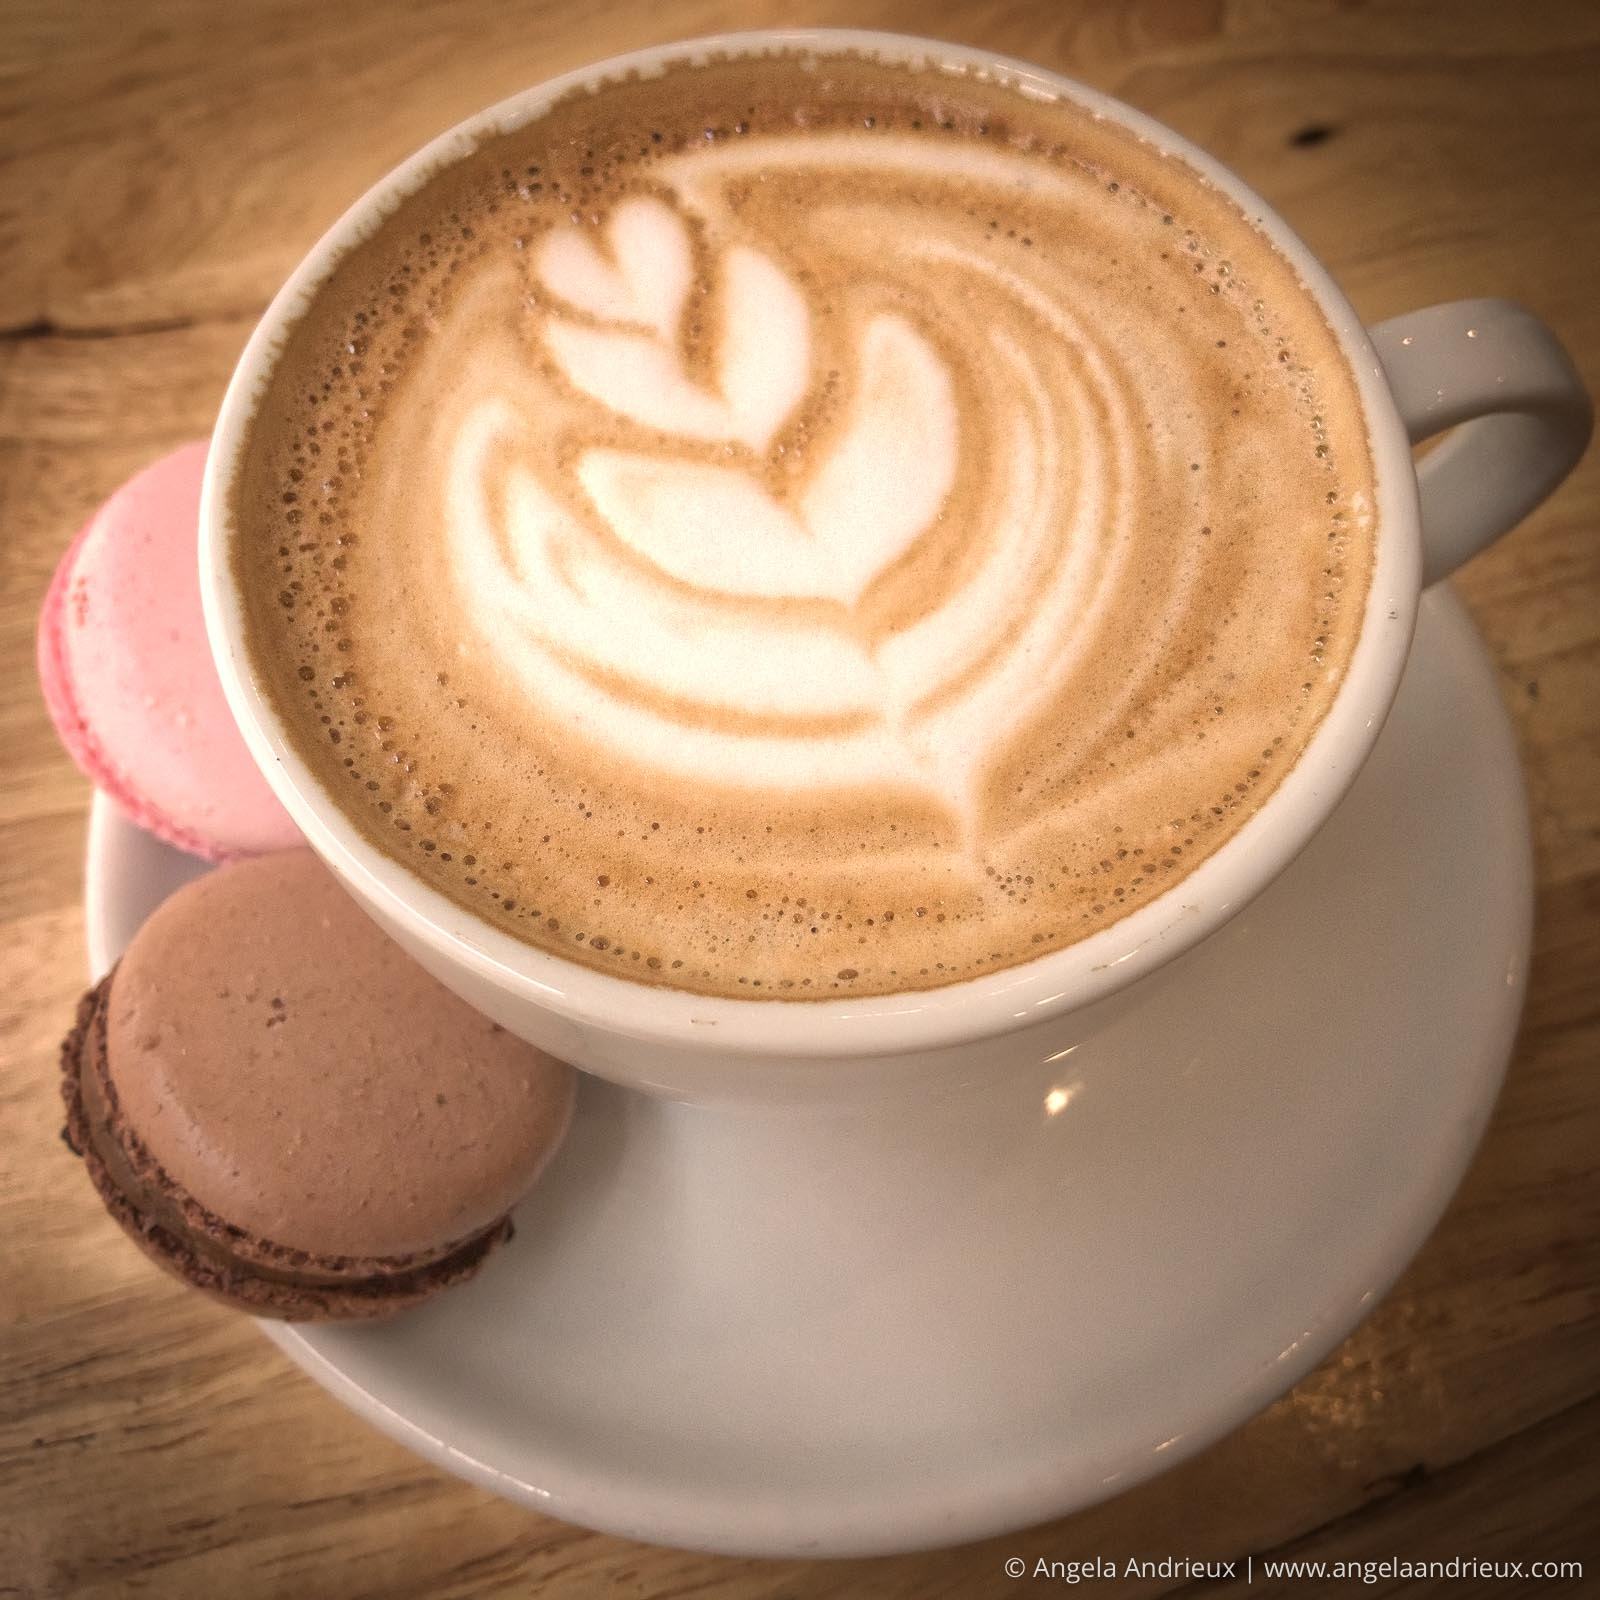 Cappuccino and French macaroons at Cure coffeehouse in Norfolk, VA